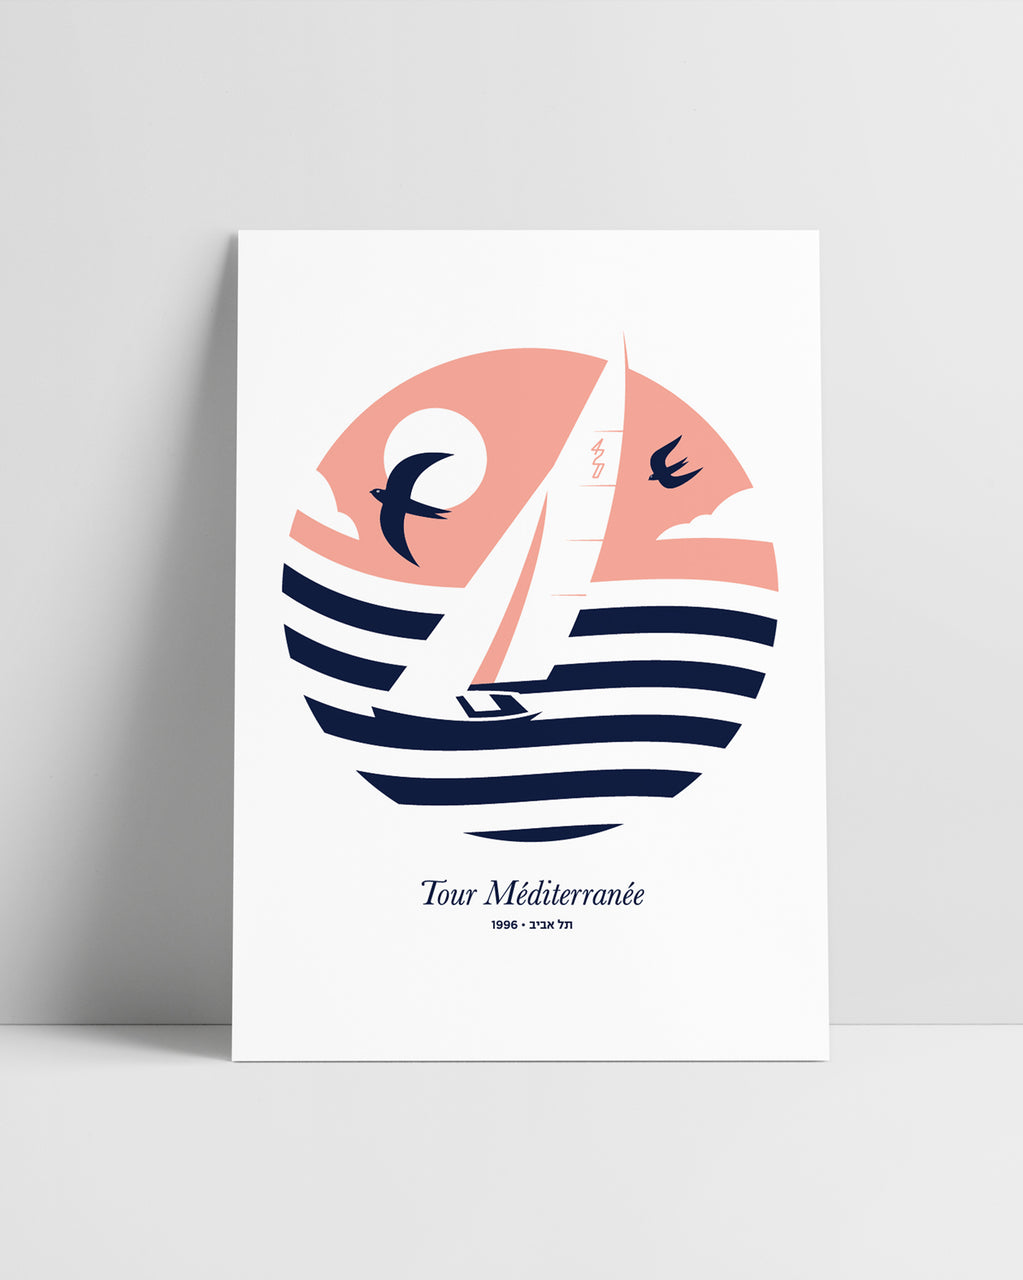 Mediterranean Tour 4.20 [Cream White] | Original Illustration Poster, Digital Print